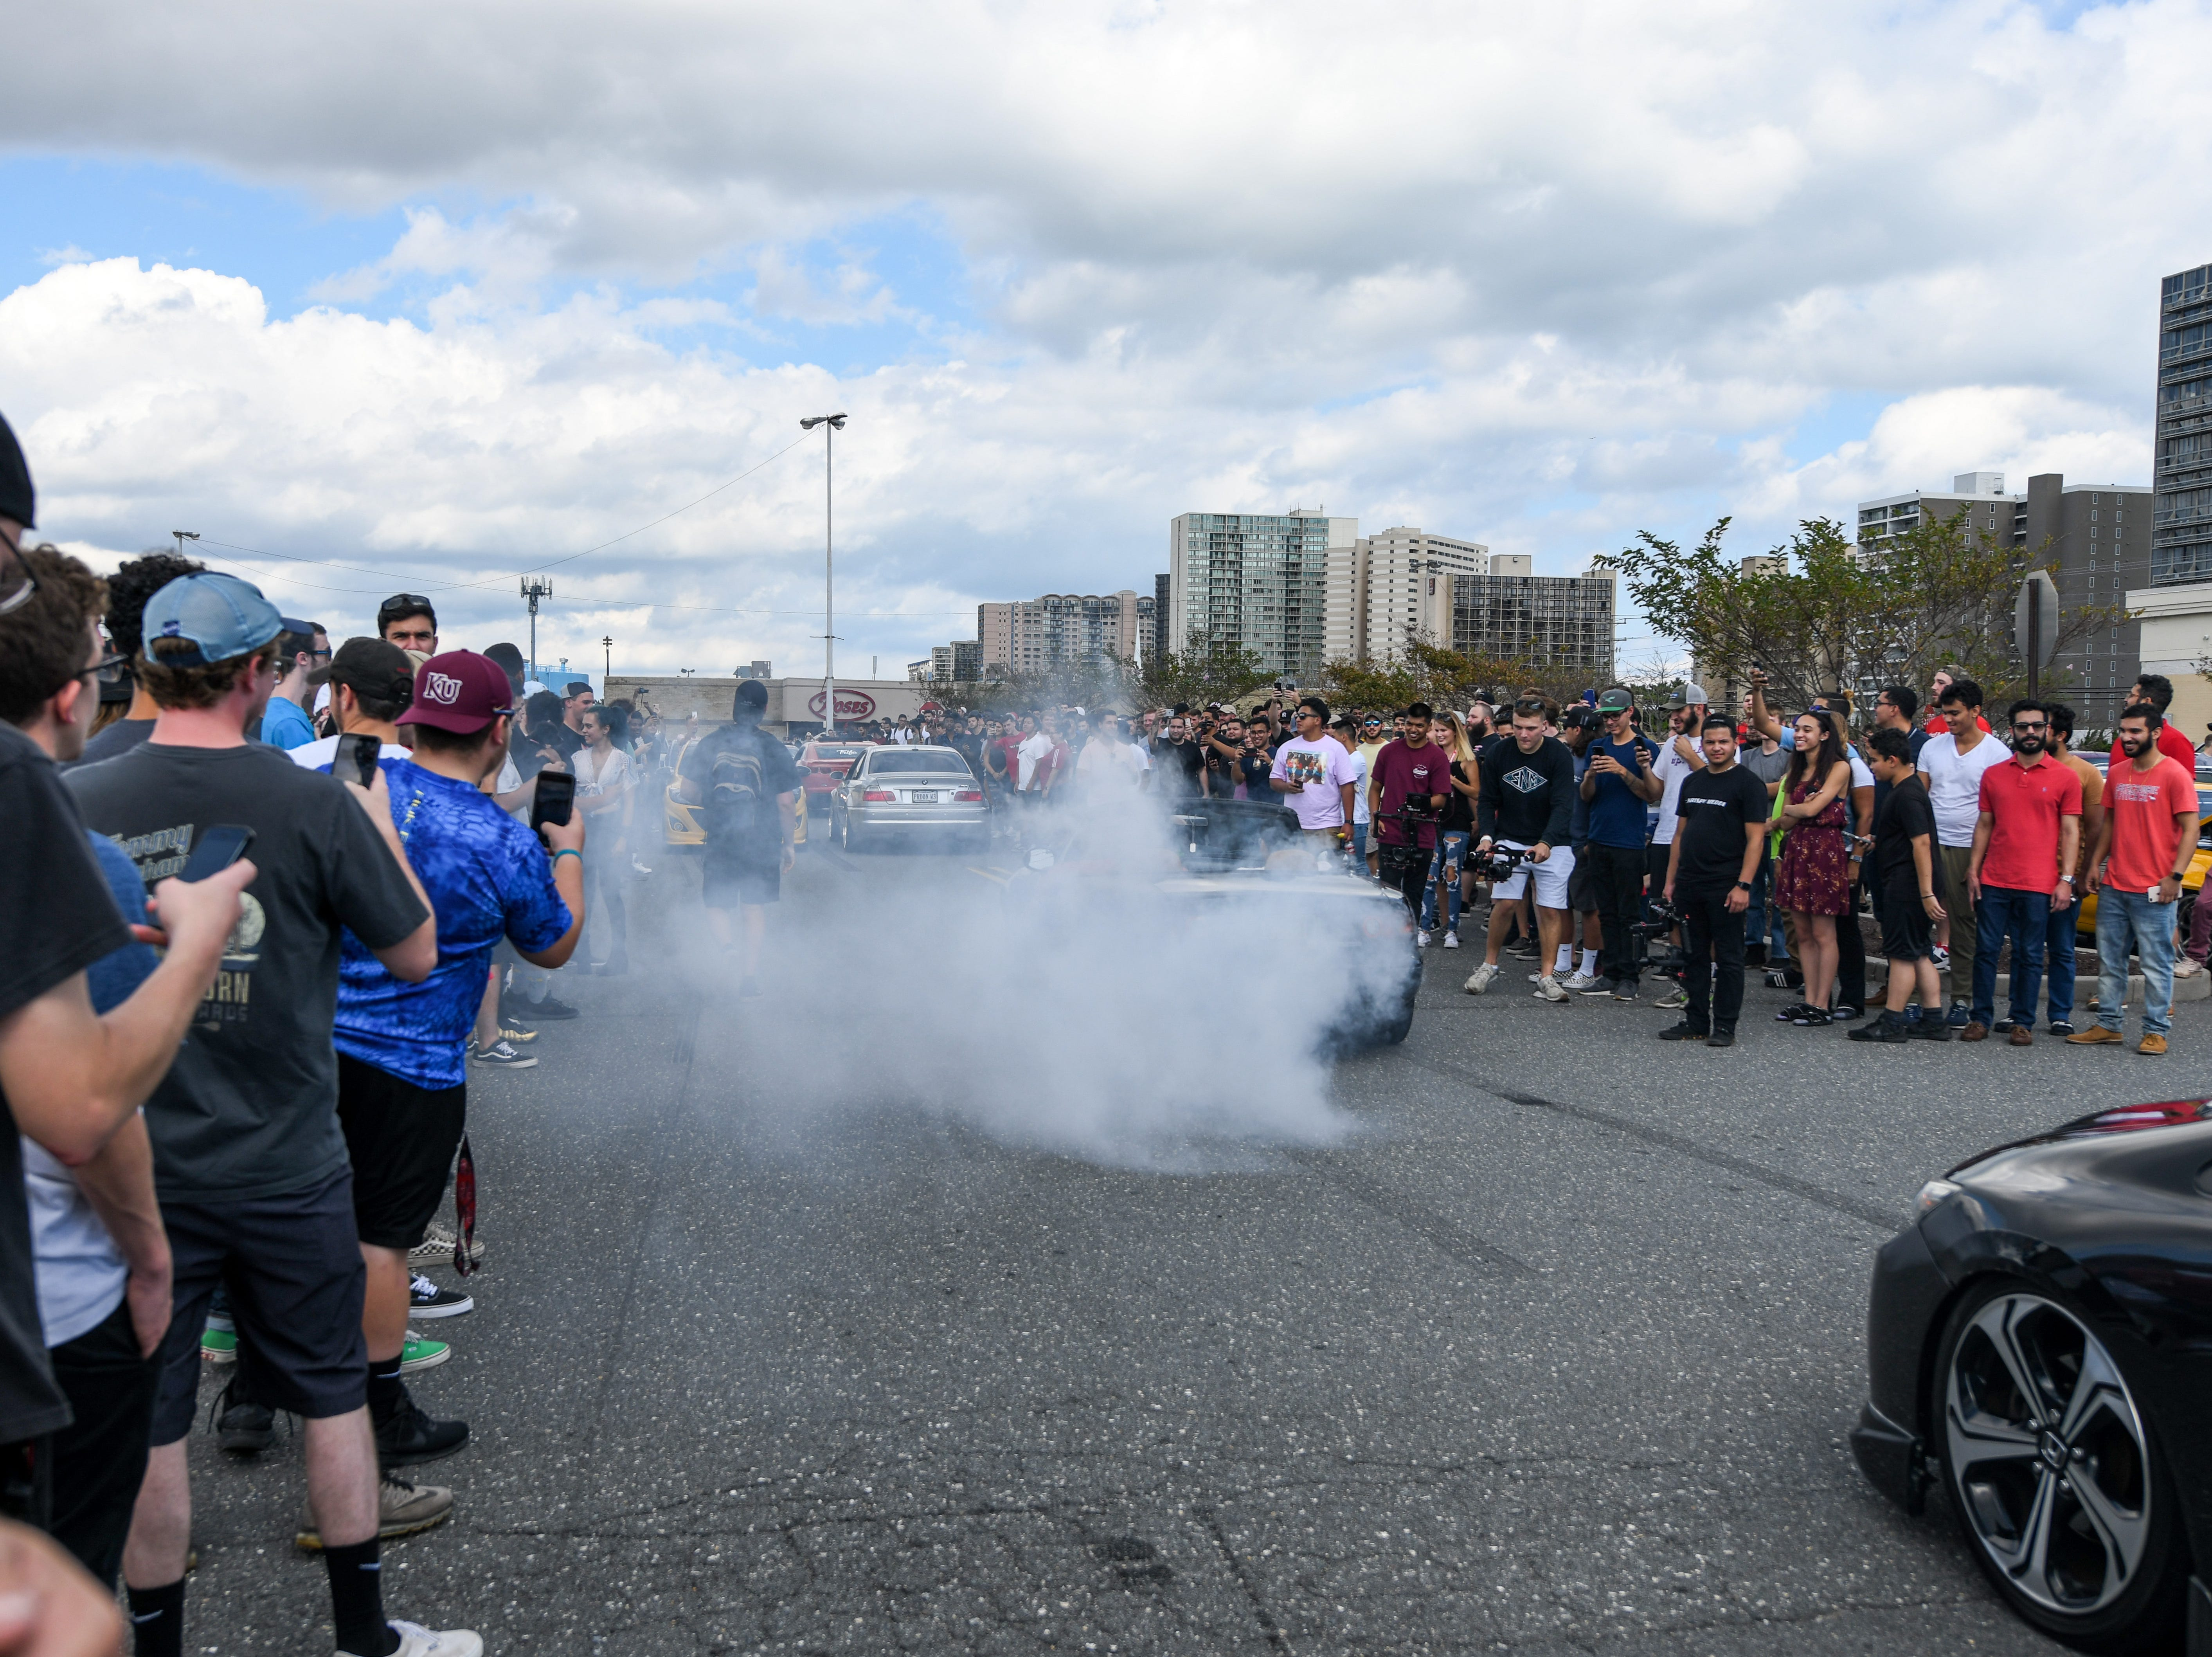 A crowd films and cheers as passing cars perform burnouts in the ACME parking lot on Saturday, Sept 29, 2018. Streets in the area were full of crowds and cars for the unofficial H2Oi weekend, despite the fact that the car show has moved to Atlantic City.